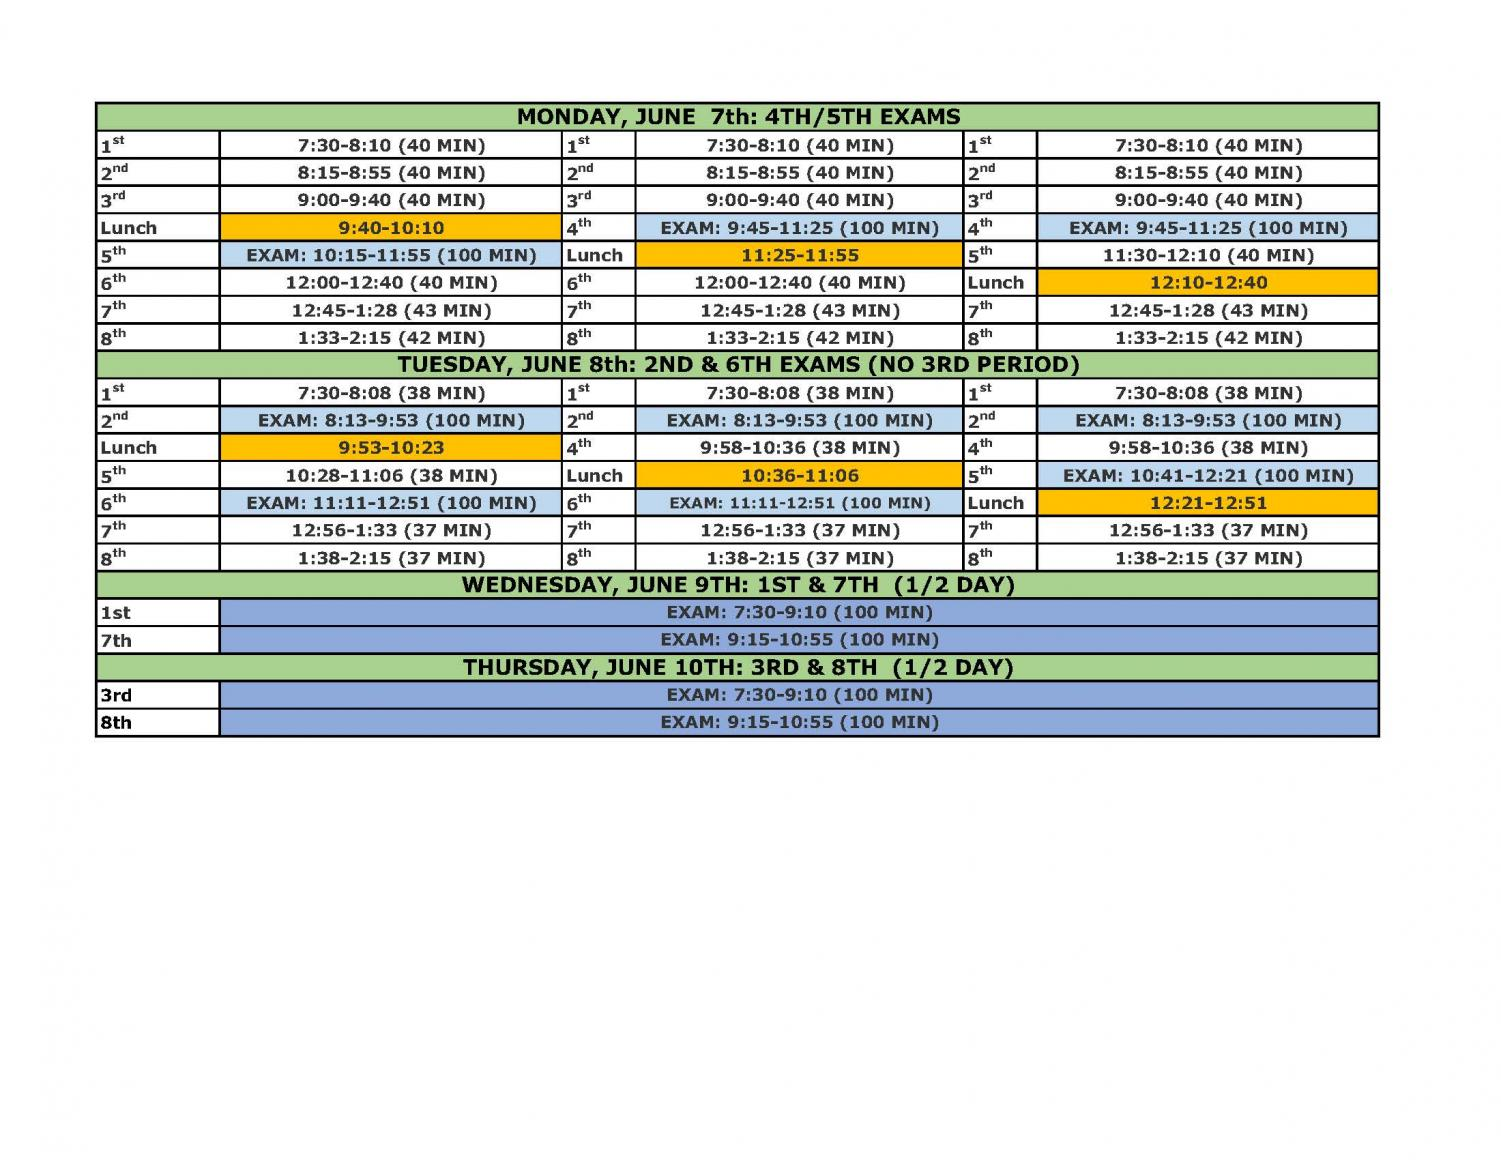 Chart of final exam schedule for 2021.